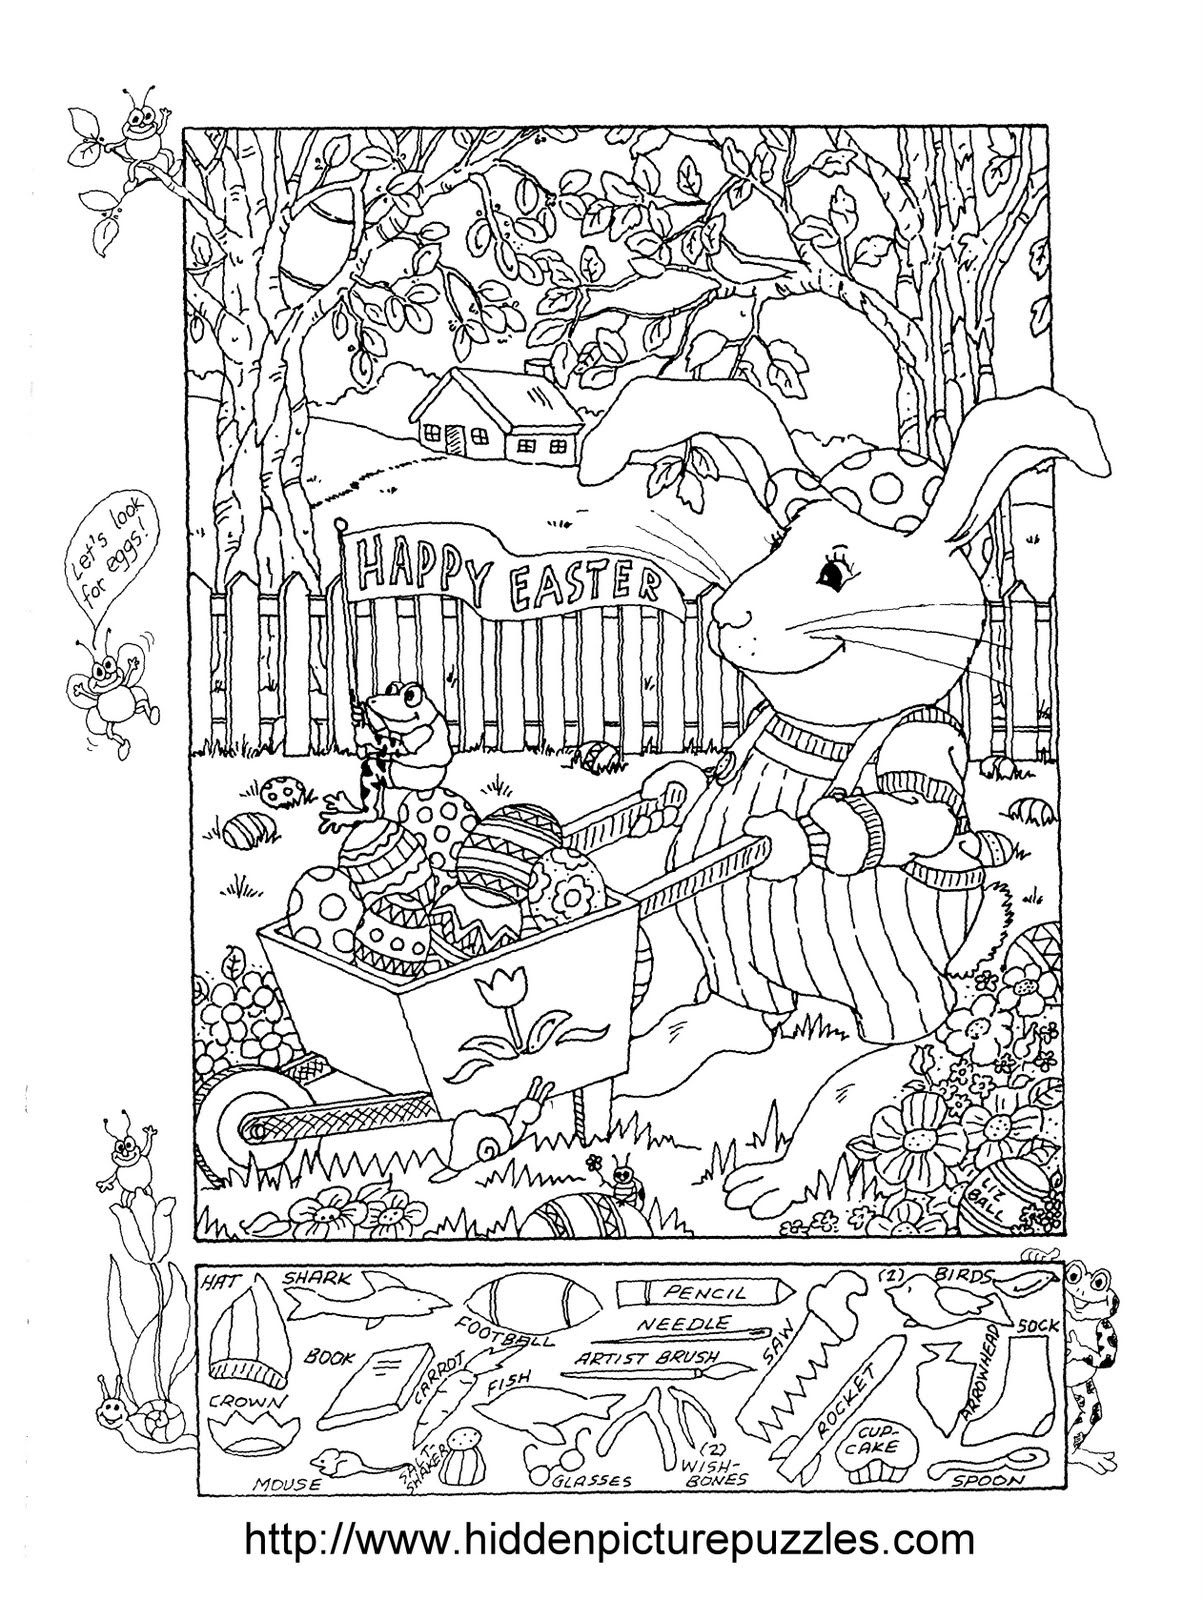 Hidden Pictures Publishing: Easter Hidden Picture Puzzle And | Free Printable Find The Hidden Objects Worksheets